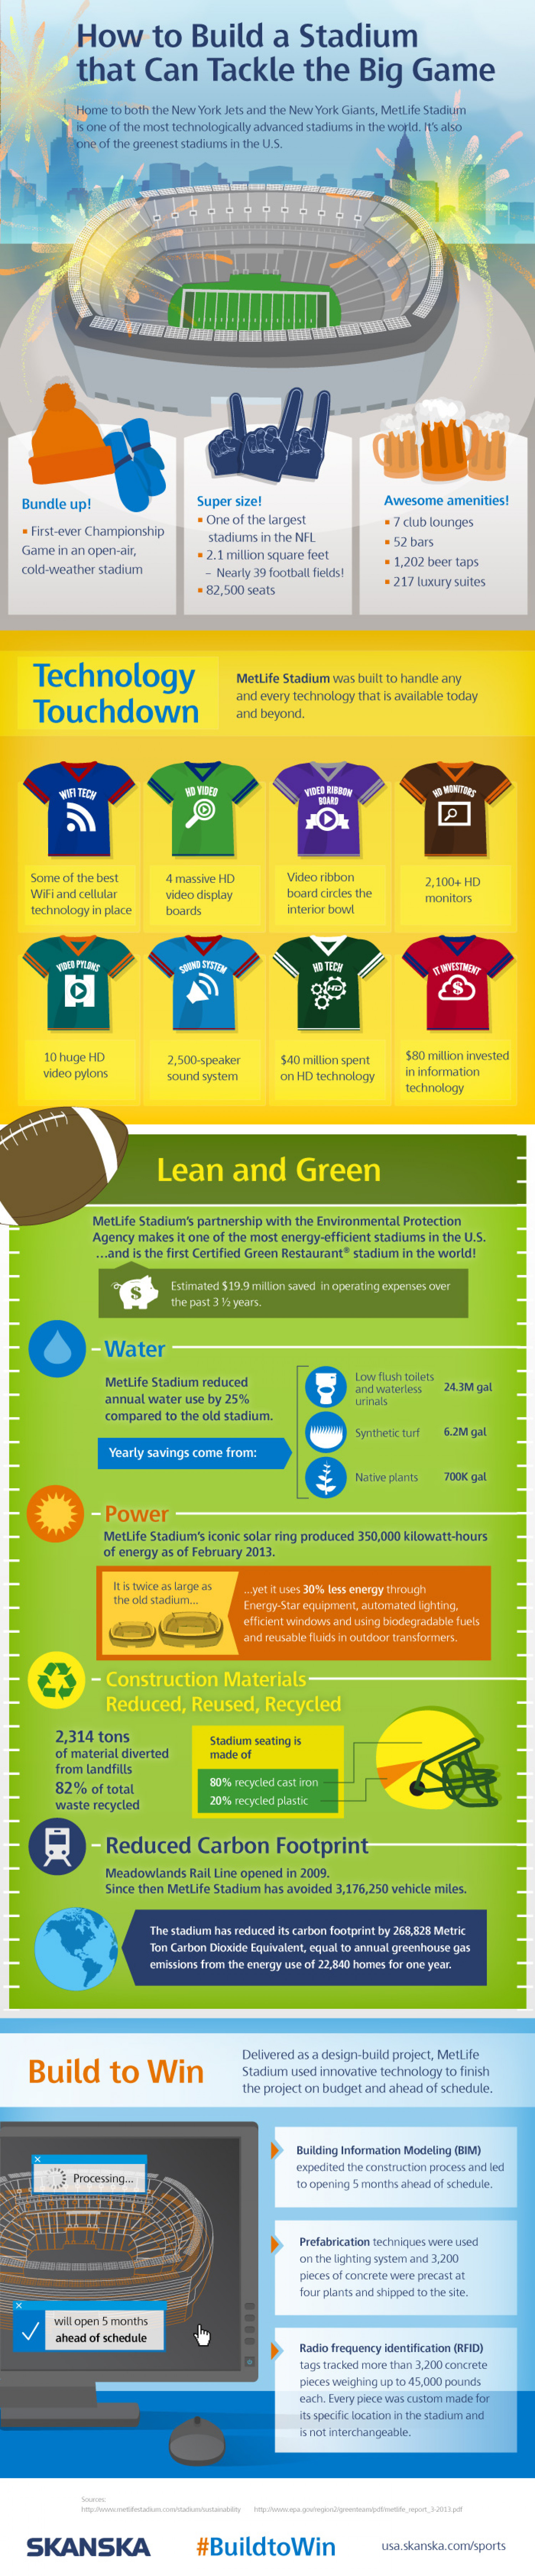 How to Build a Stadium that Can Tackle the Big Game Infographic